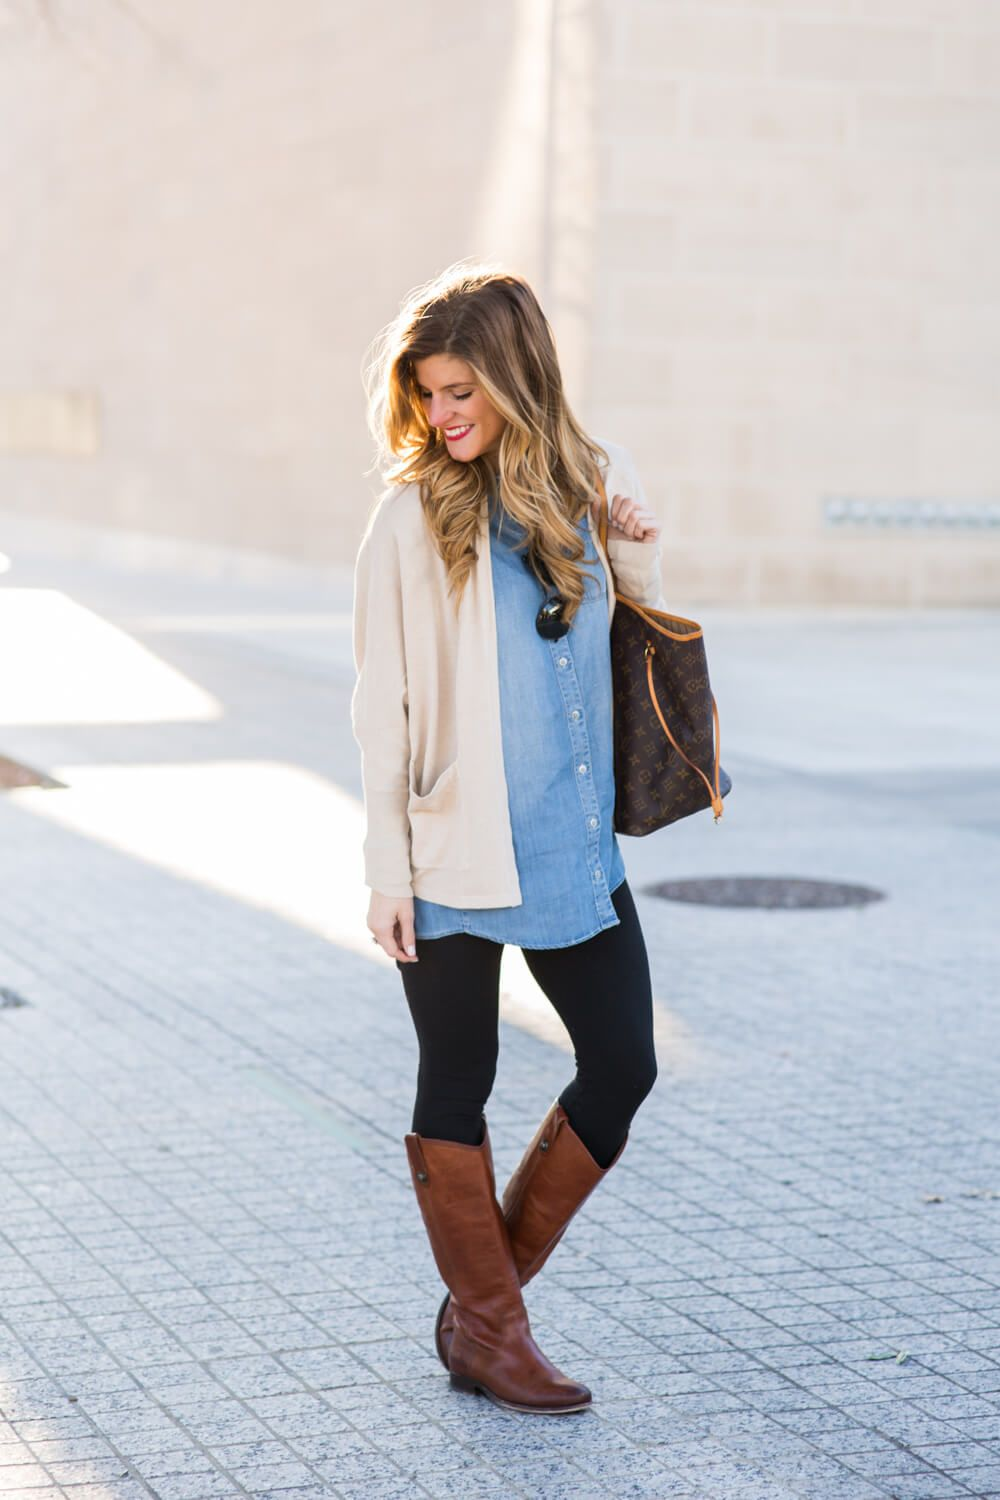 Images of Long Sweaters To Wear With Leggings And Boots - Best ...